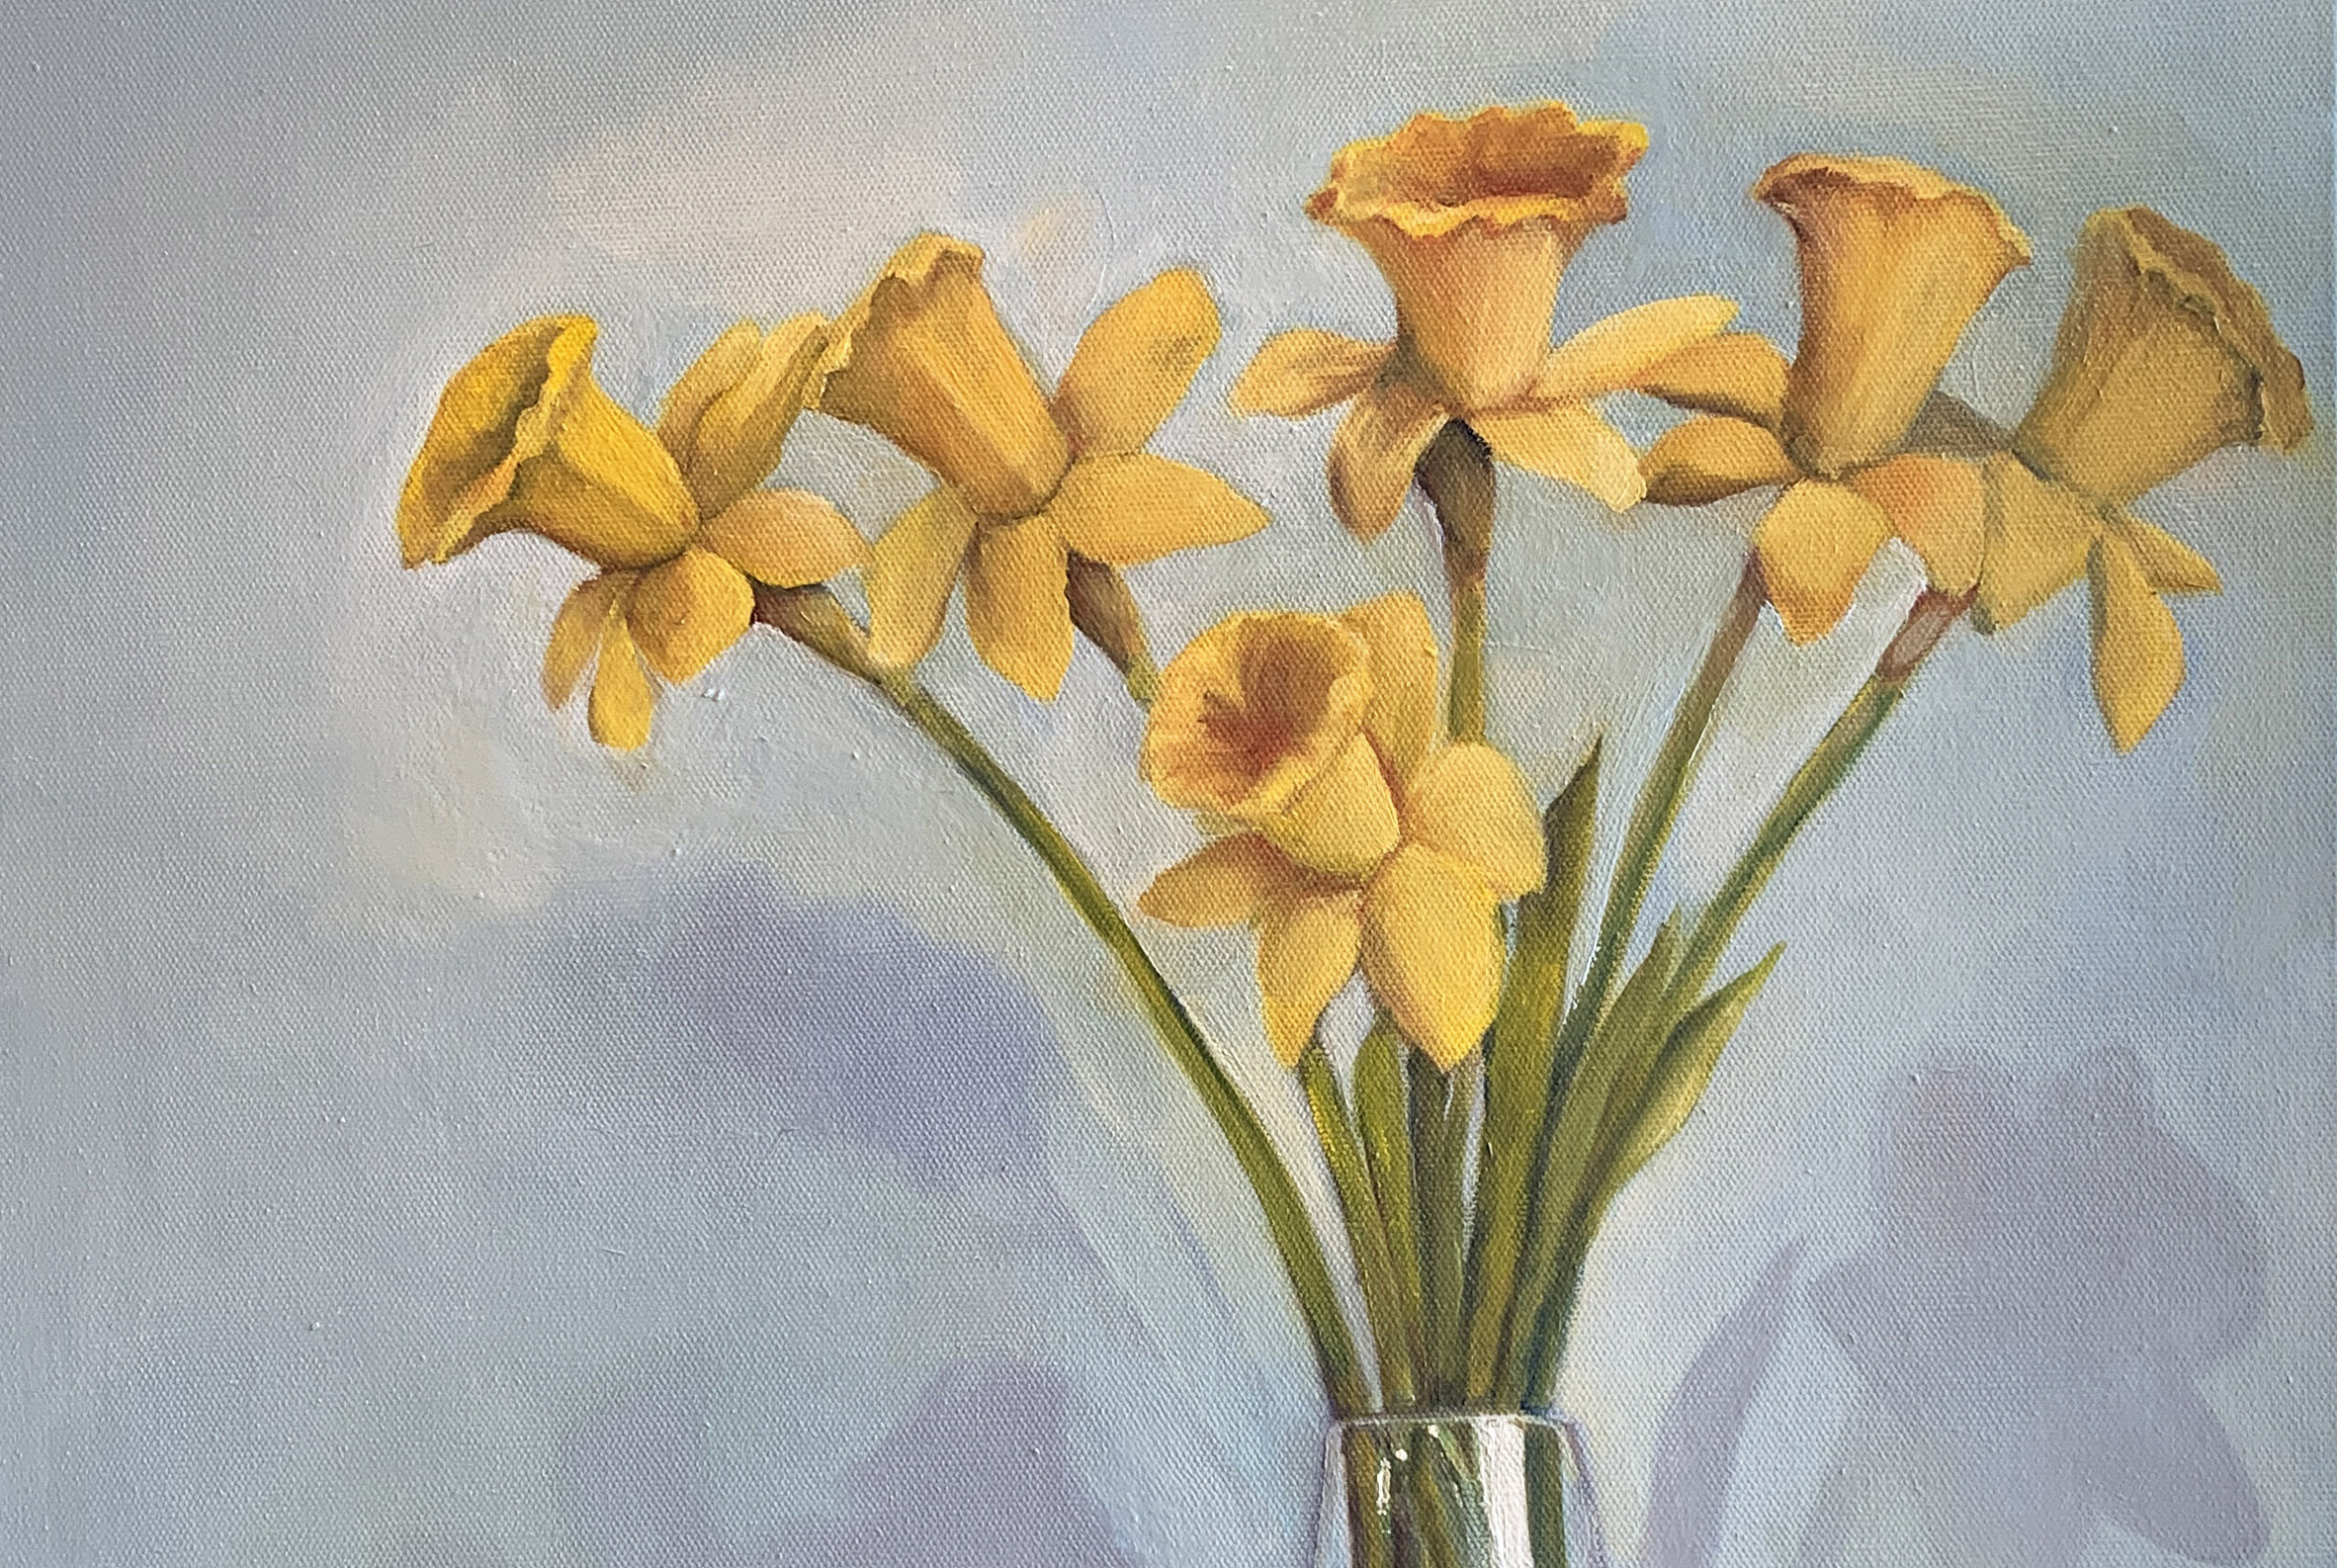 Yellow daffodils in a vase